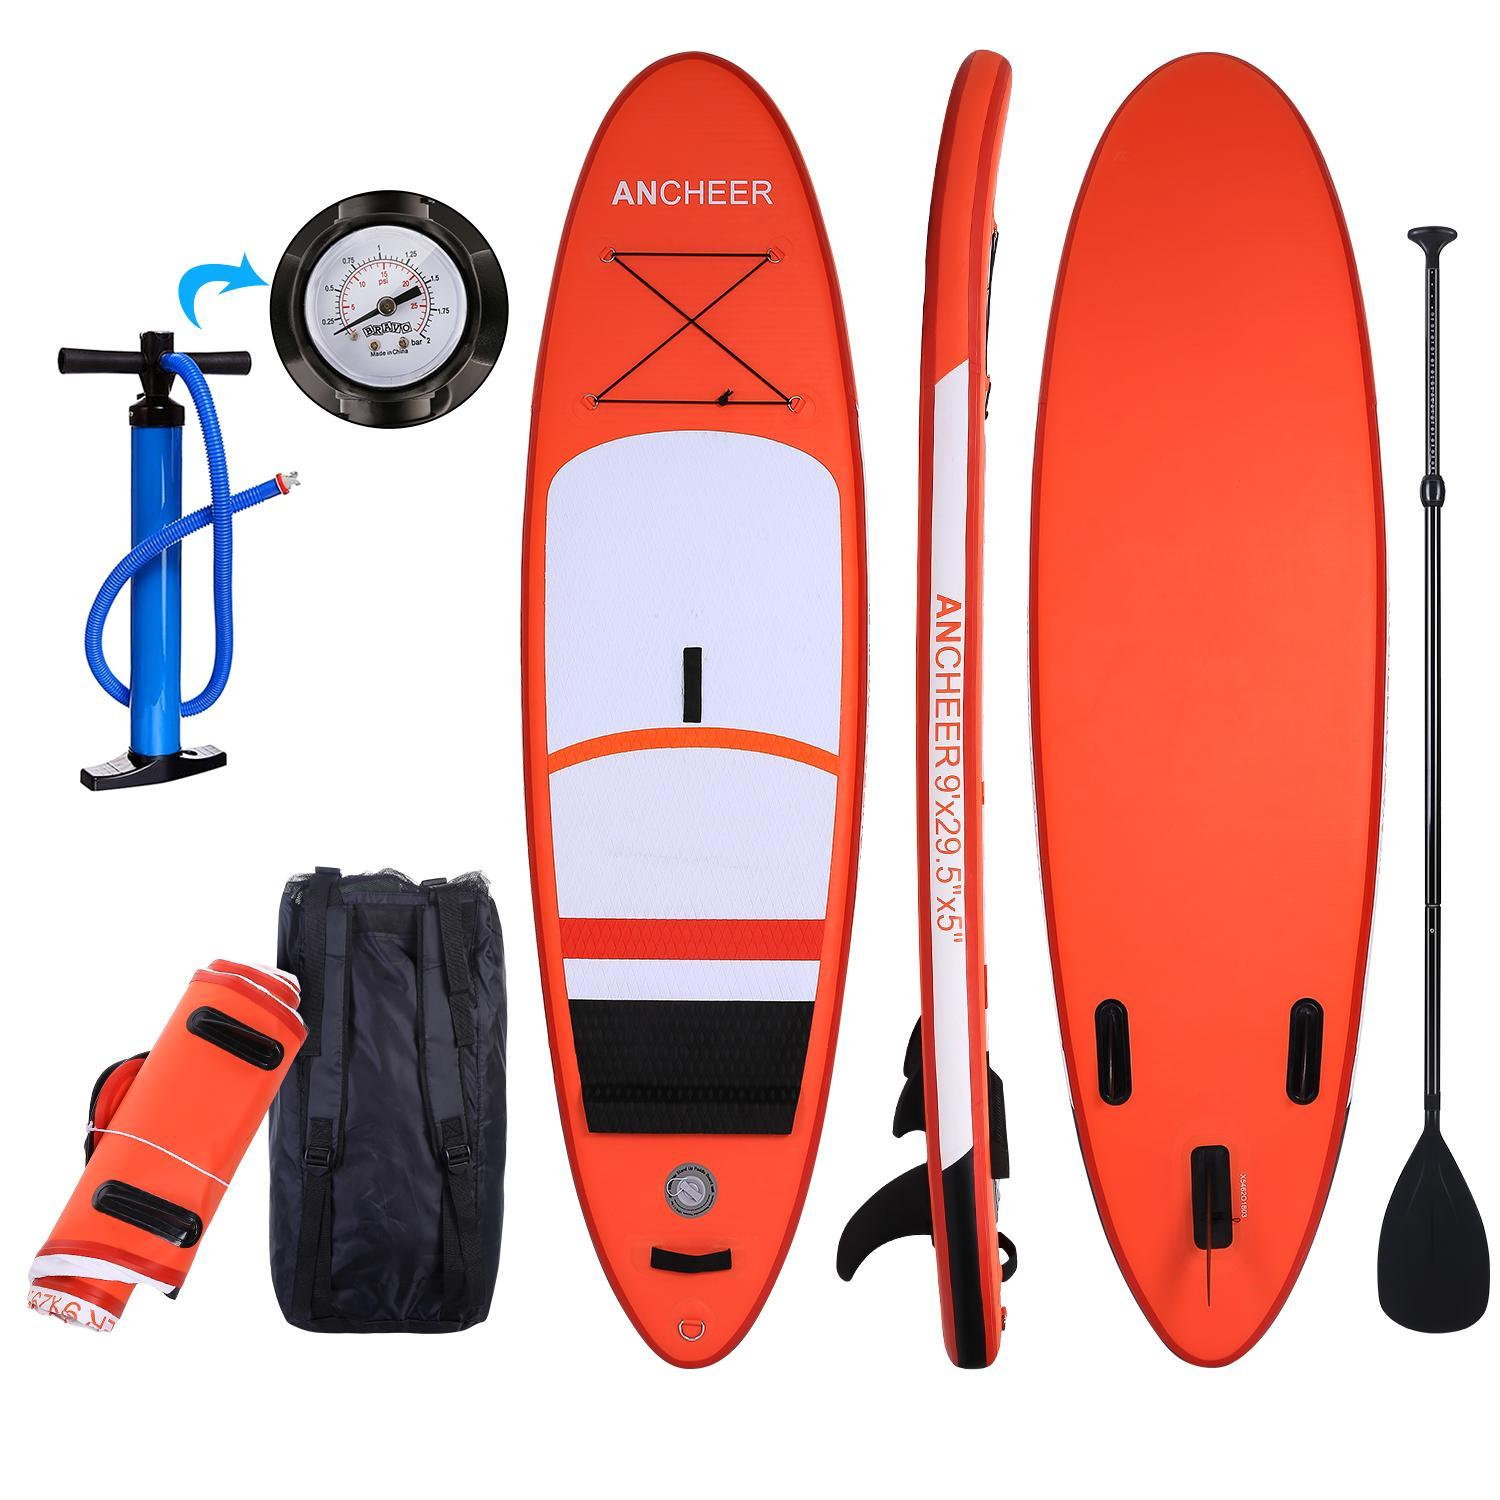 """Ancheer Hifashion 10' 6"""" Inflatable Stand Up Paddle Board SUP w/ Adjustable Paddle Travel Backpack,Blue Sup Inflatable Paddle Boards HFON12"""